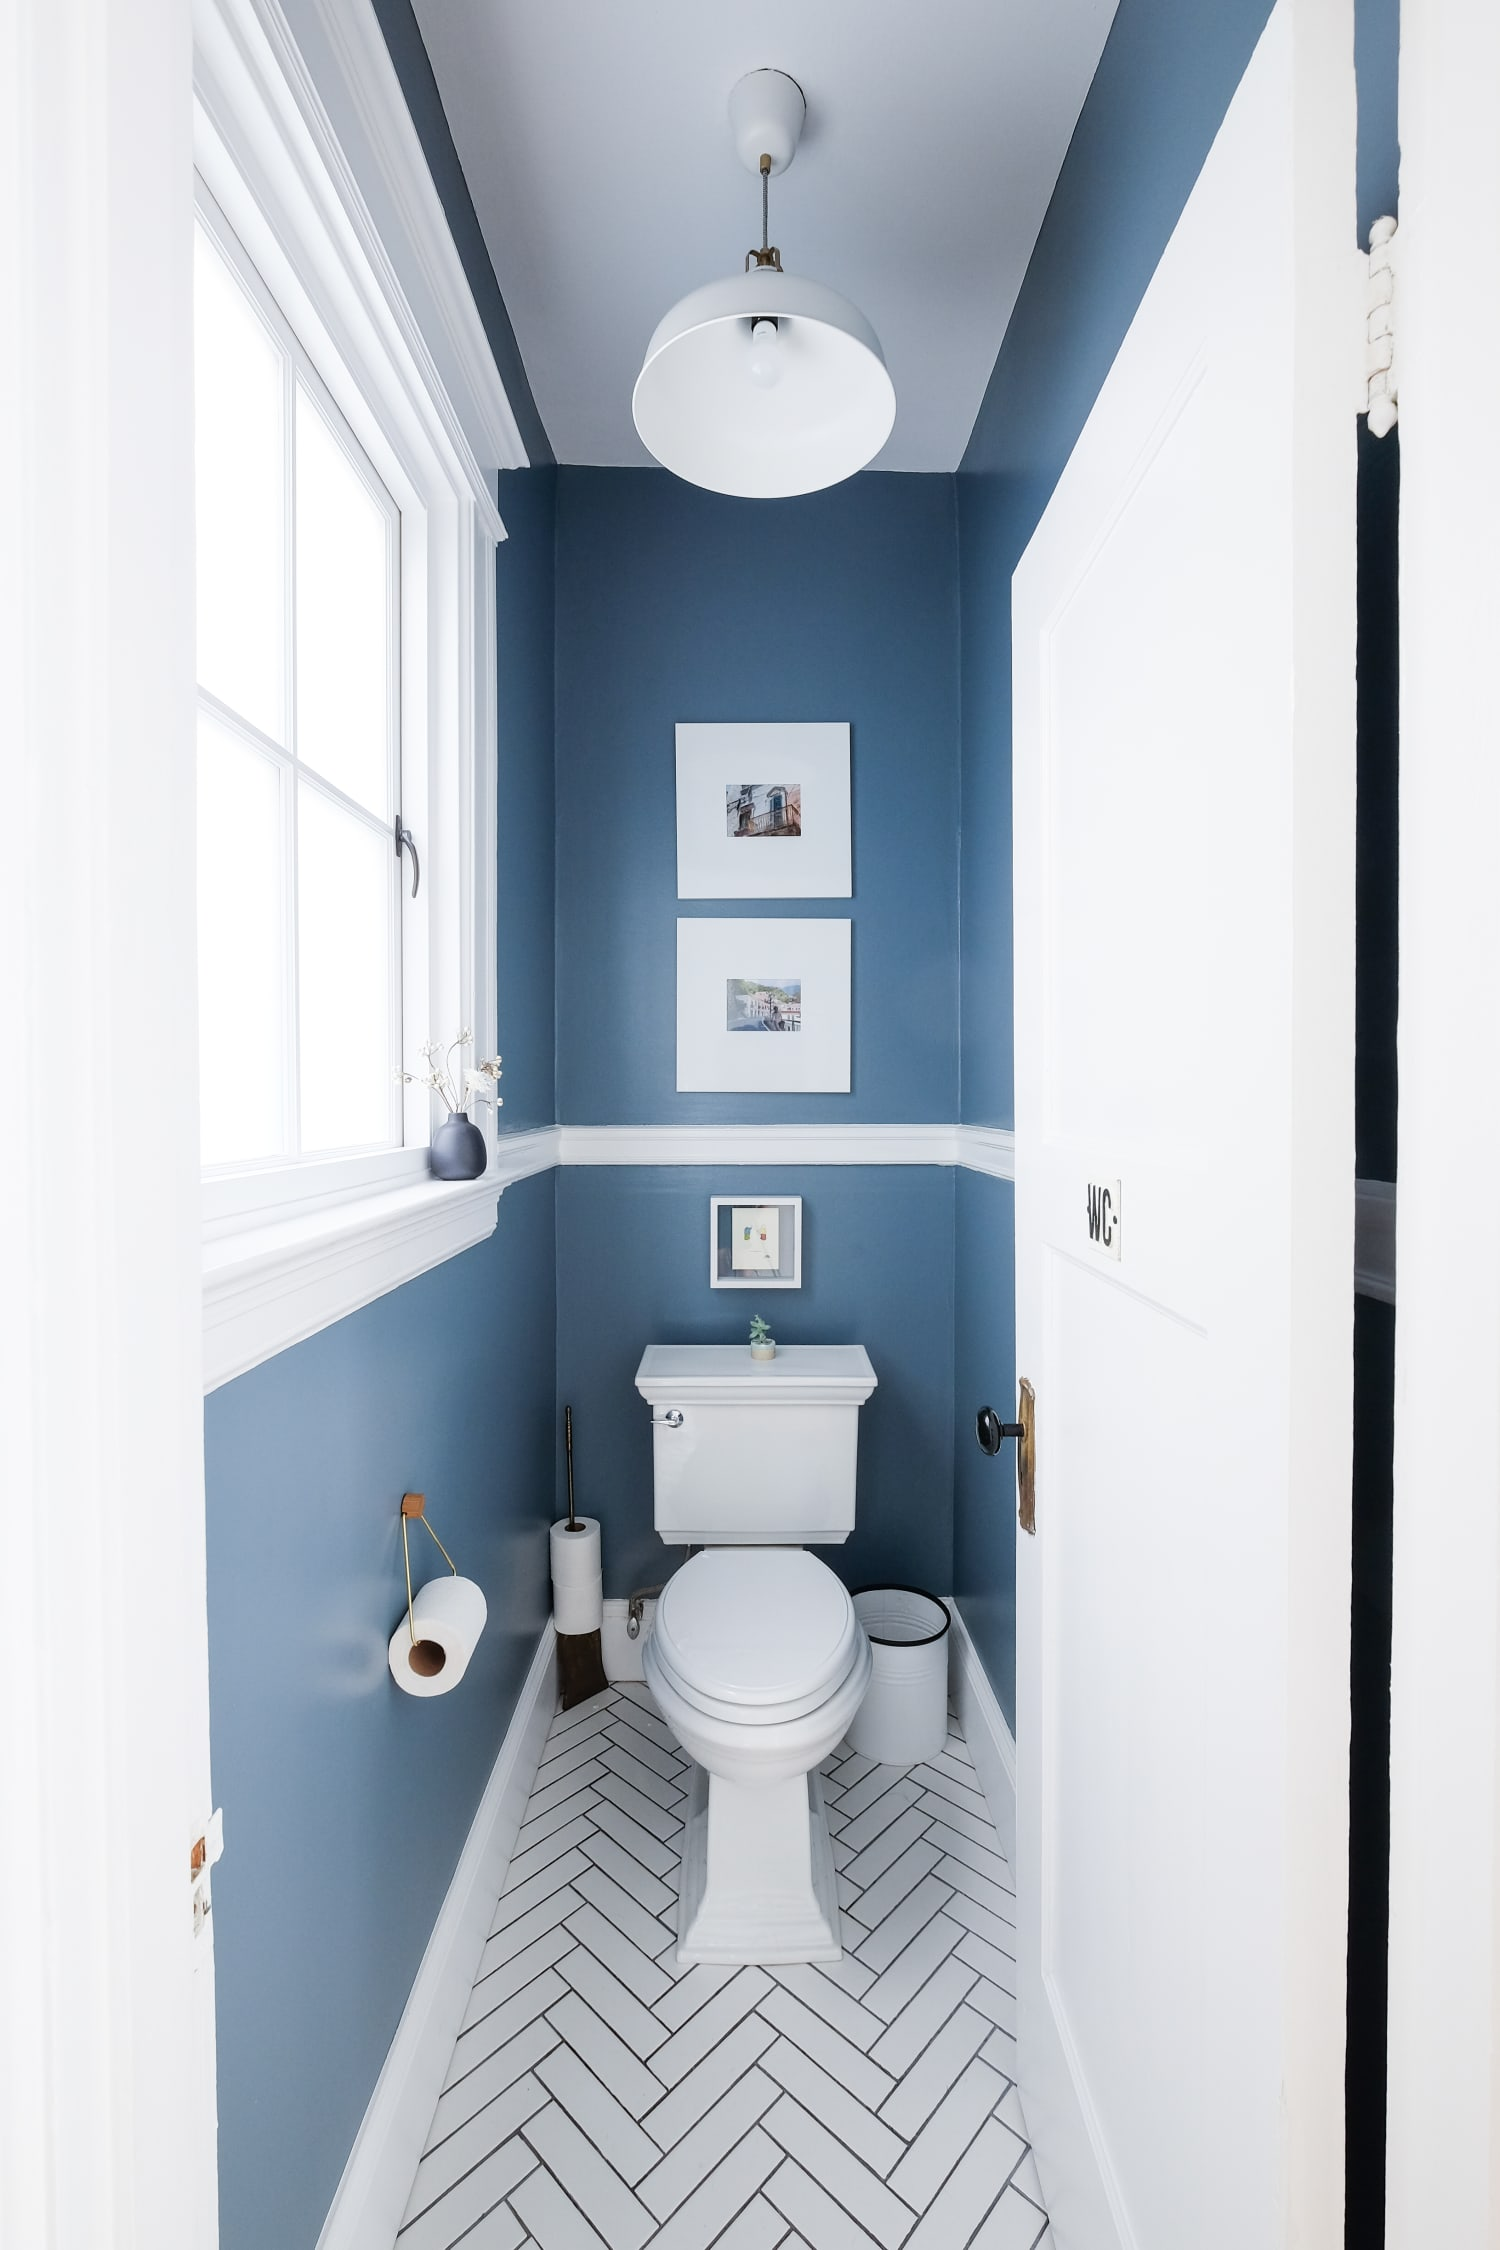 Bathroom Paint - How to Prevent Mildew, Mold | Apartment ...